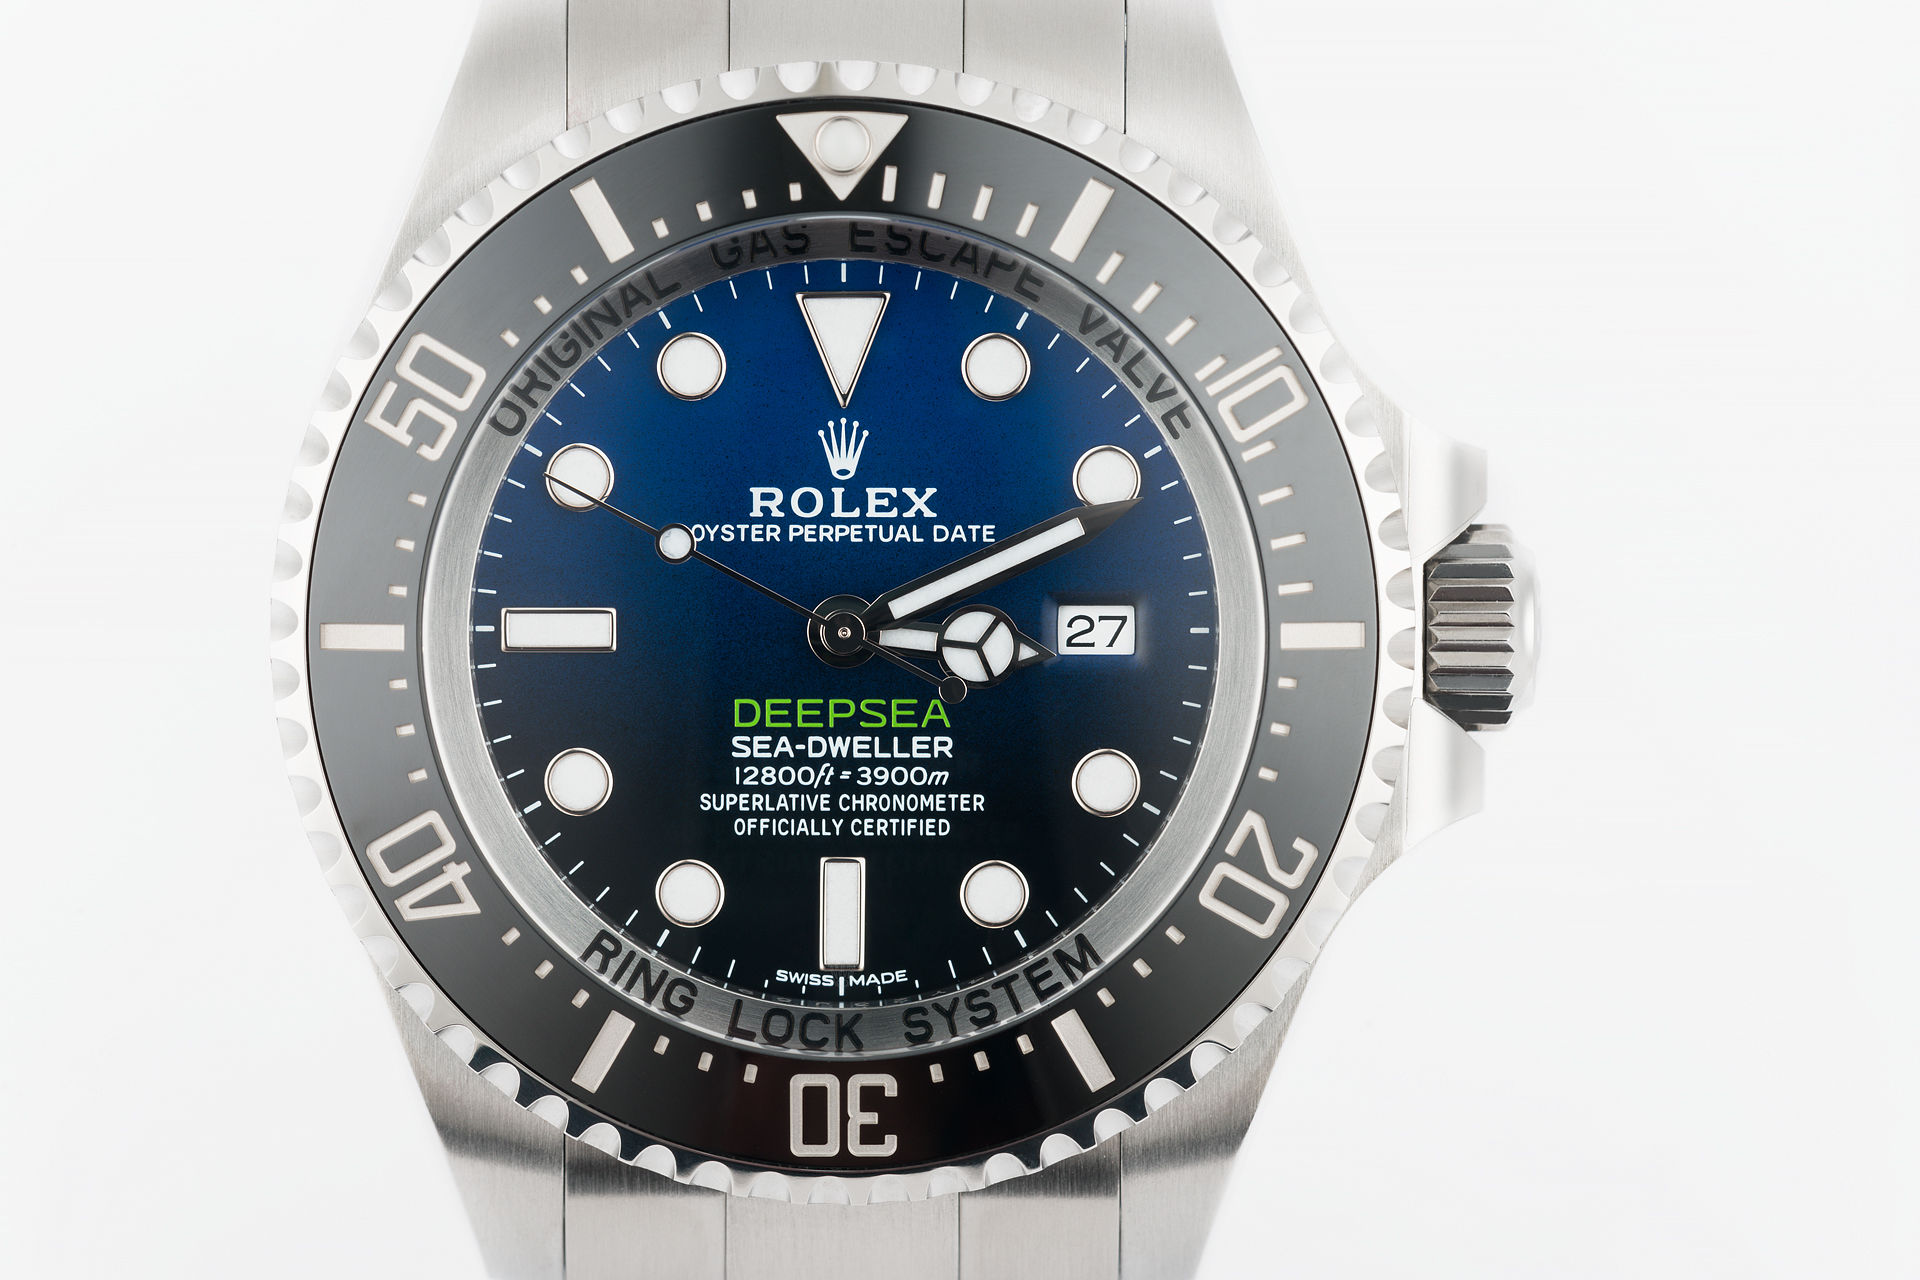 ref 116660 | 'Brand New 2017' | Rolex Sea-Dweller Deepsea